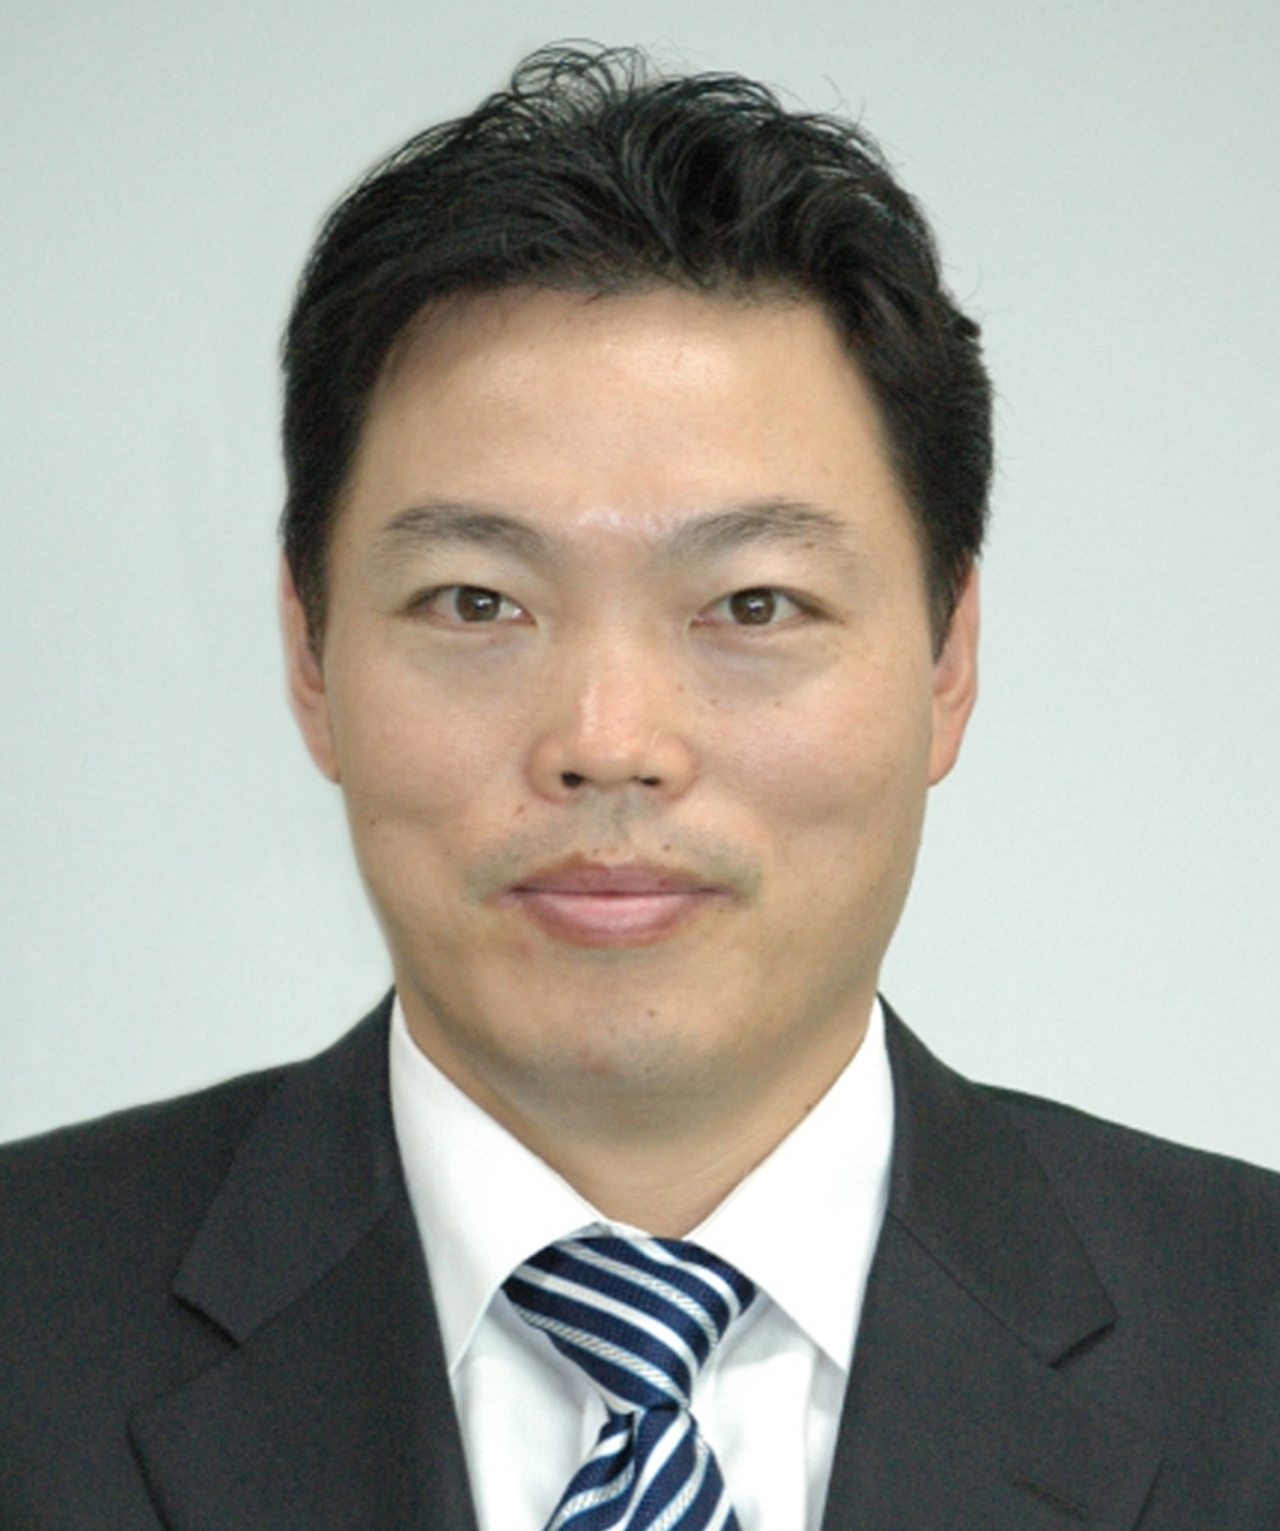 Kim Oh-soo, tapped as new prosecutor general, in a file photo (Yonhap)